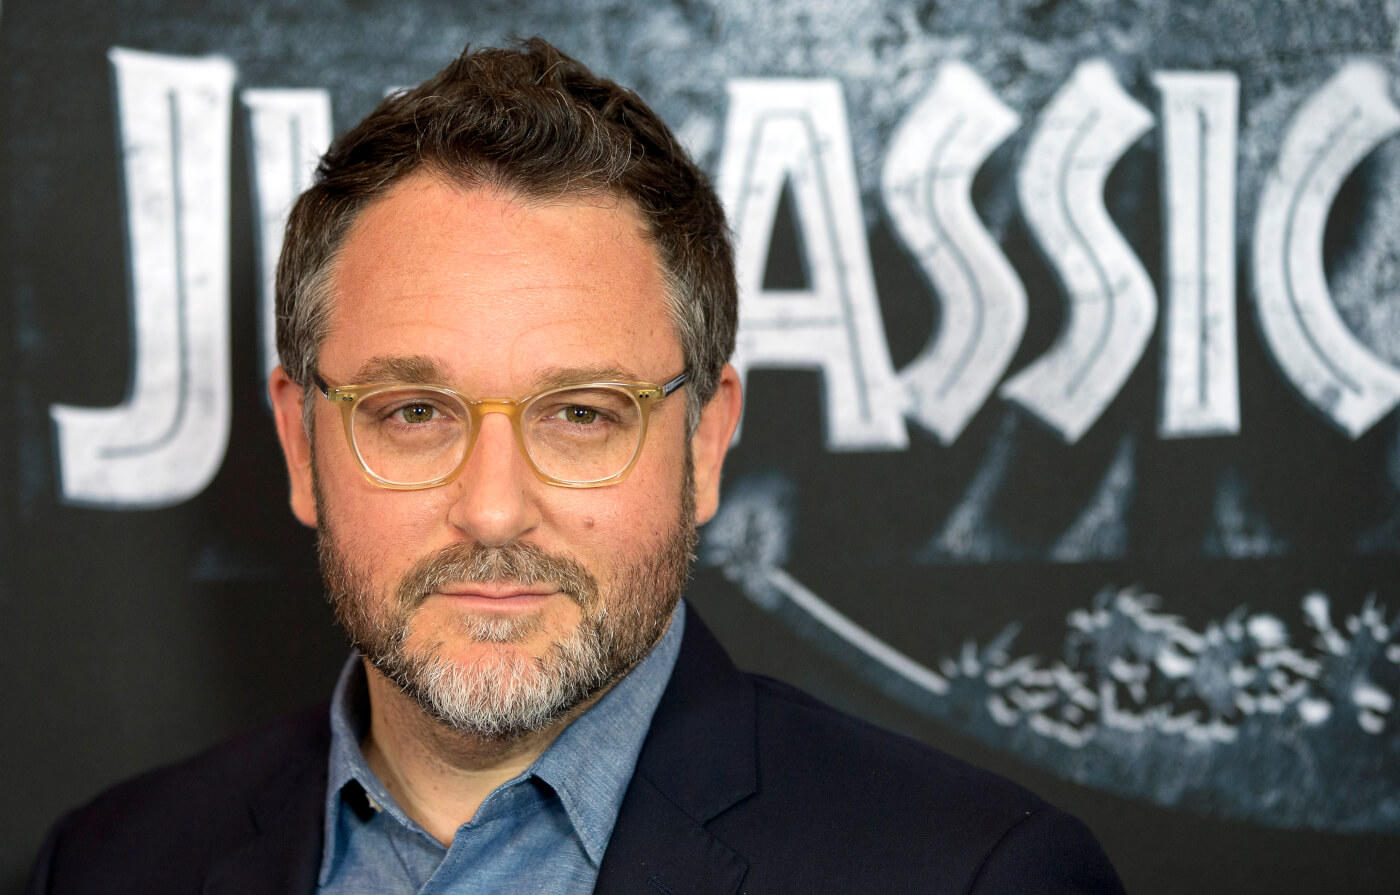 Exclusive: Colin Trevorrow Talks Jurassic World 2 and more! (Surprise Guest: J.A. Bayona!)